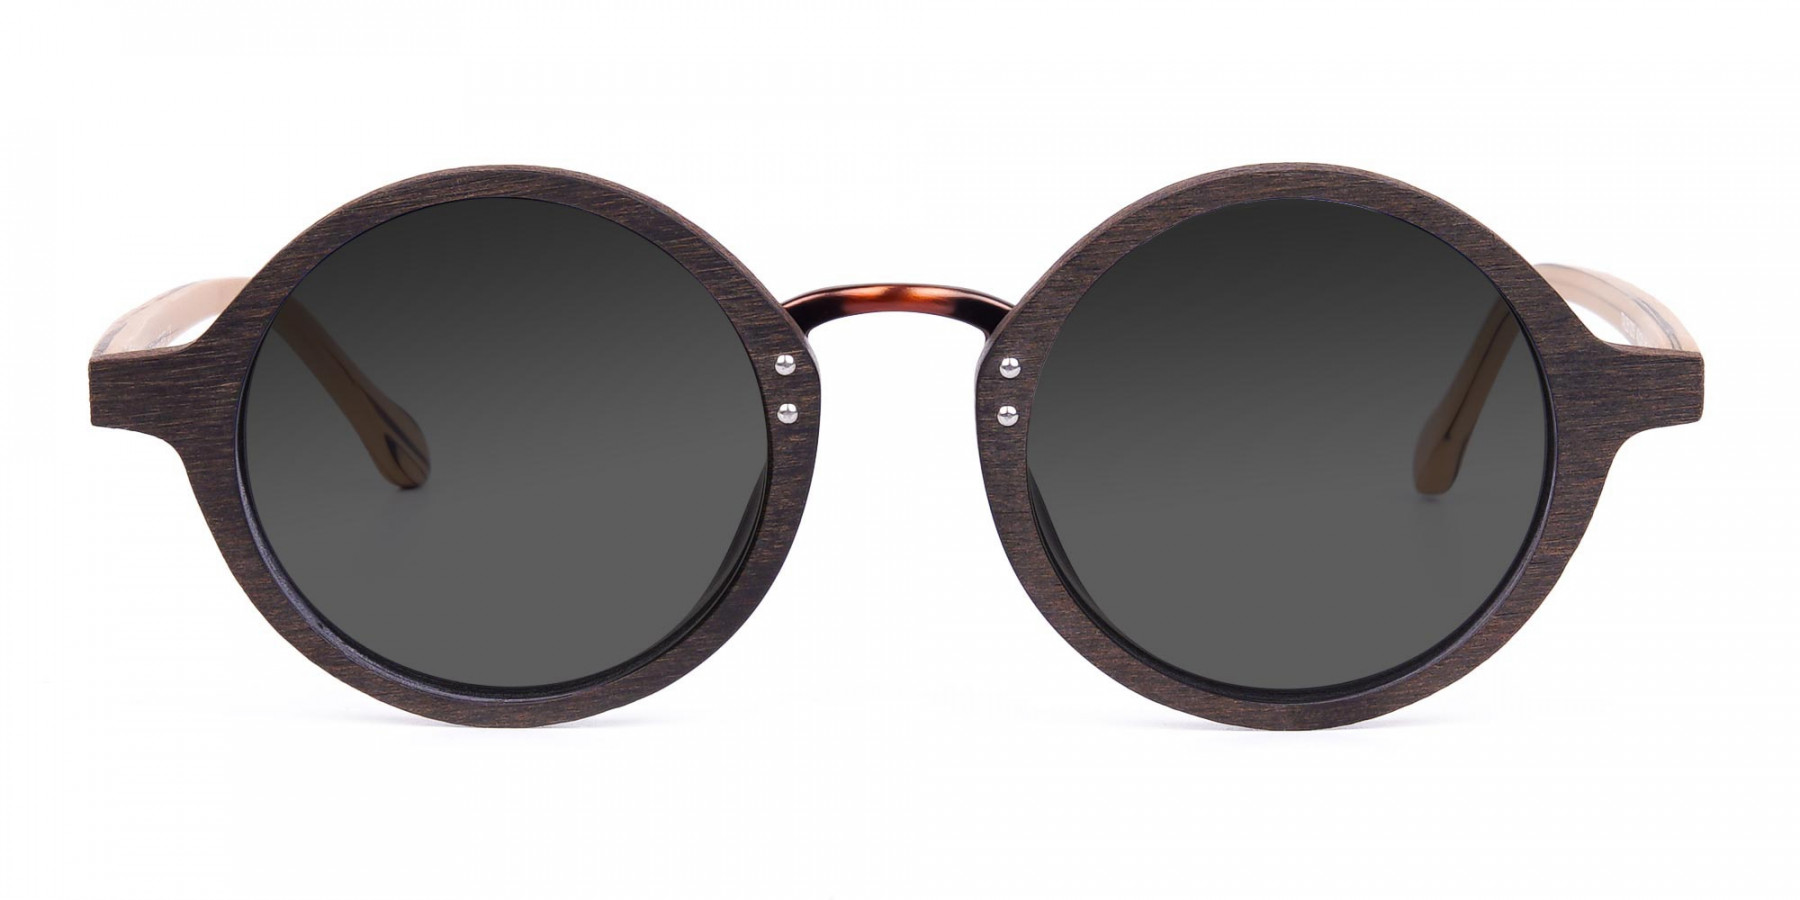 Brown-Wood-Frame-Sunglasses-with-Grey-Tint-3